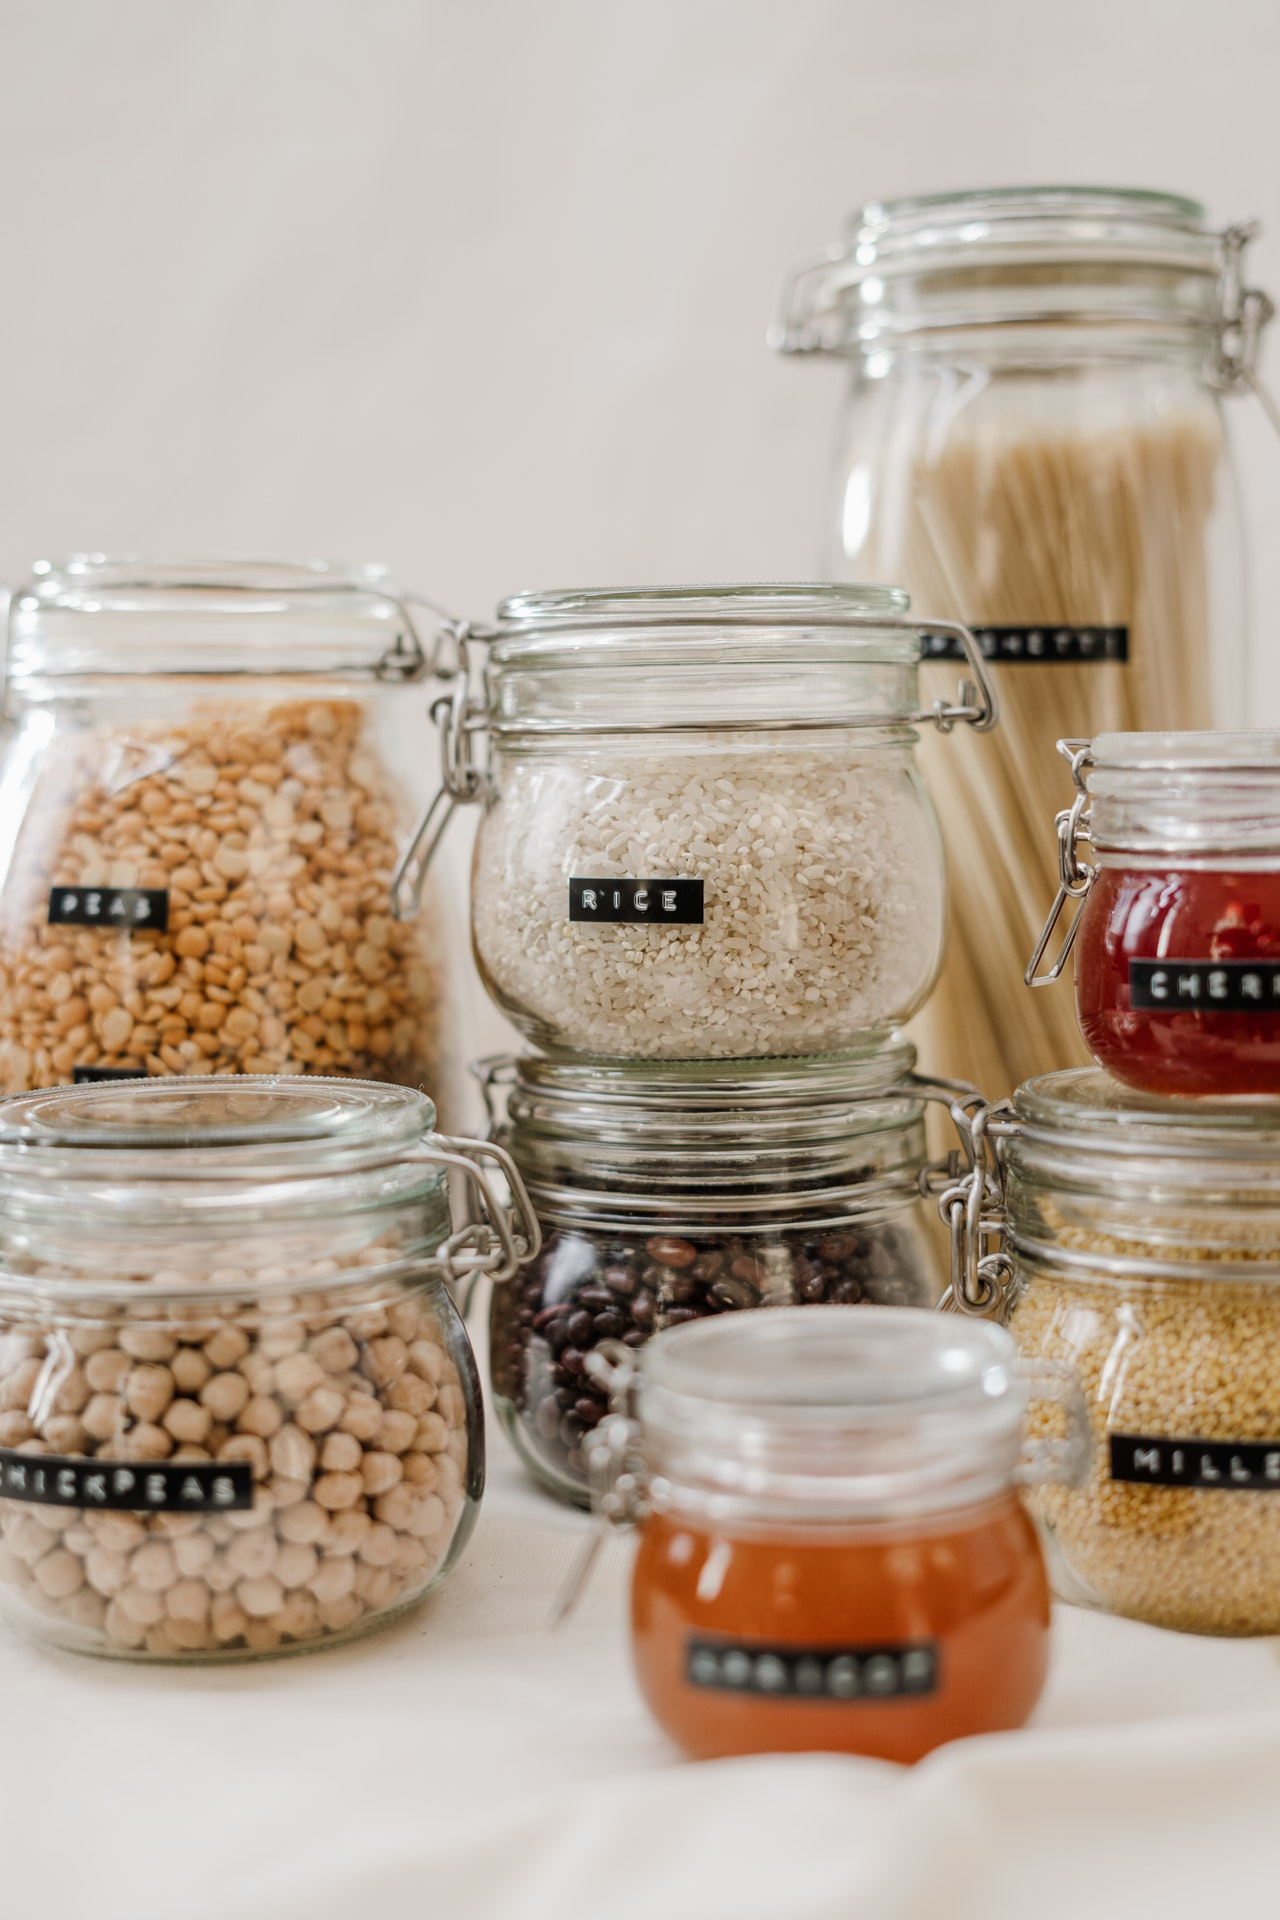 clear-glass-jars-filled-with-cereals-tatu-nutrition-movement-mind